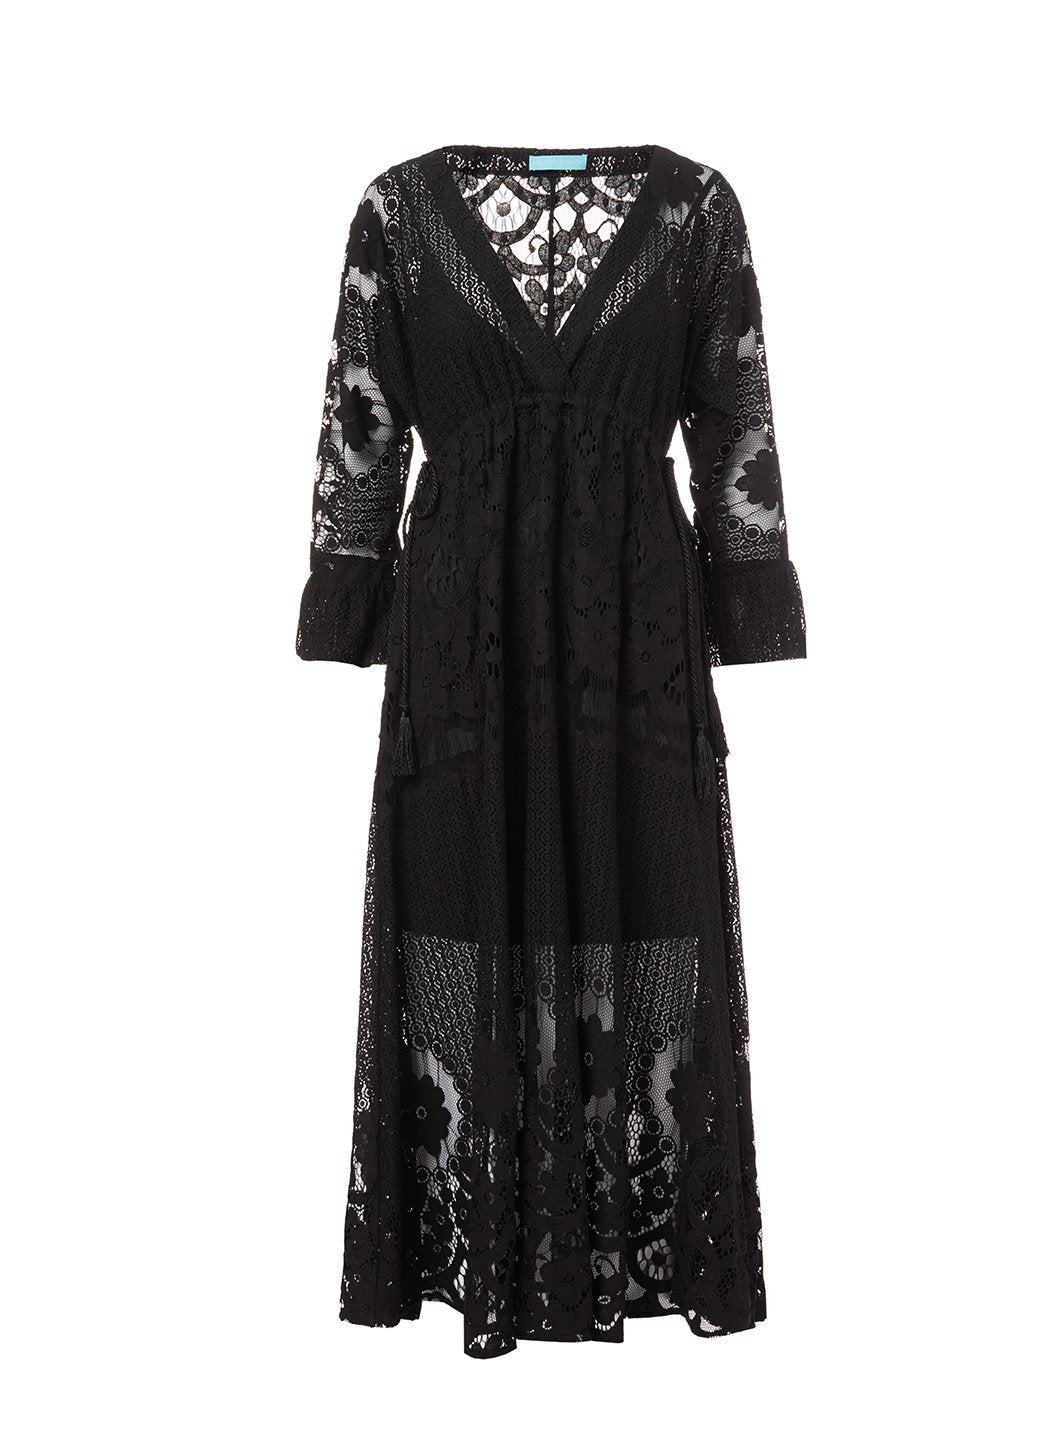 melissa black lace tieside midi dress 2019